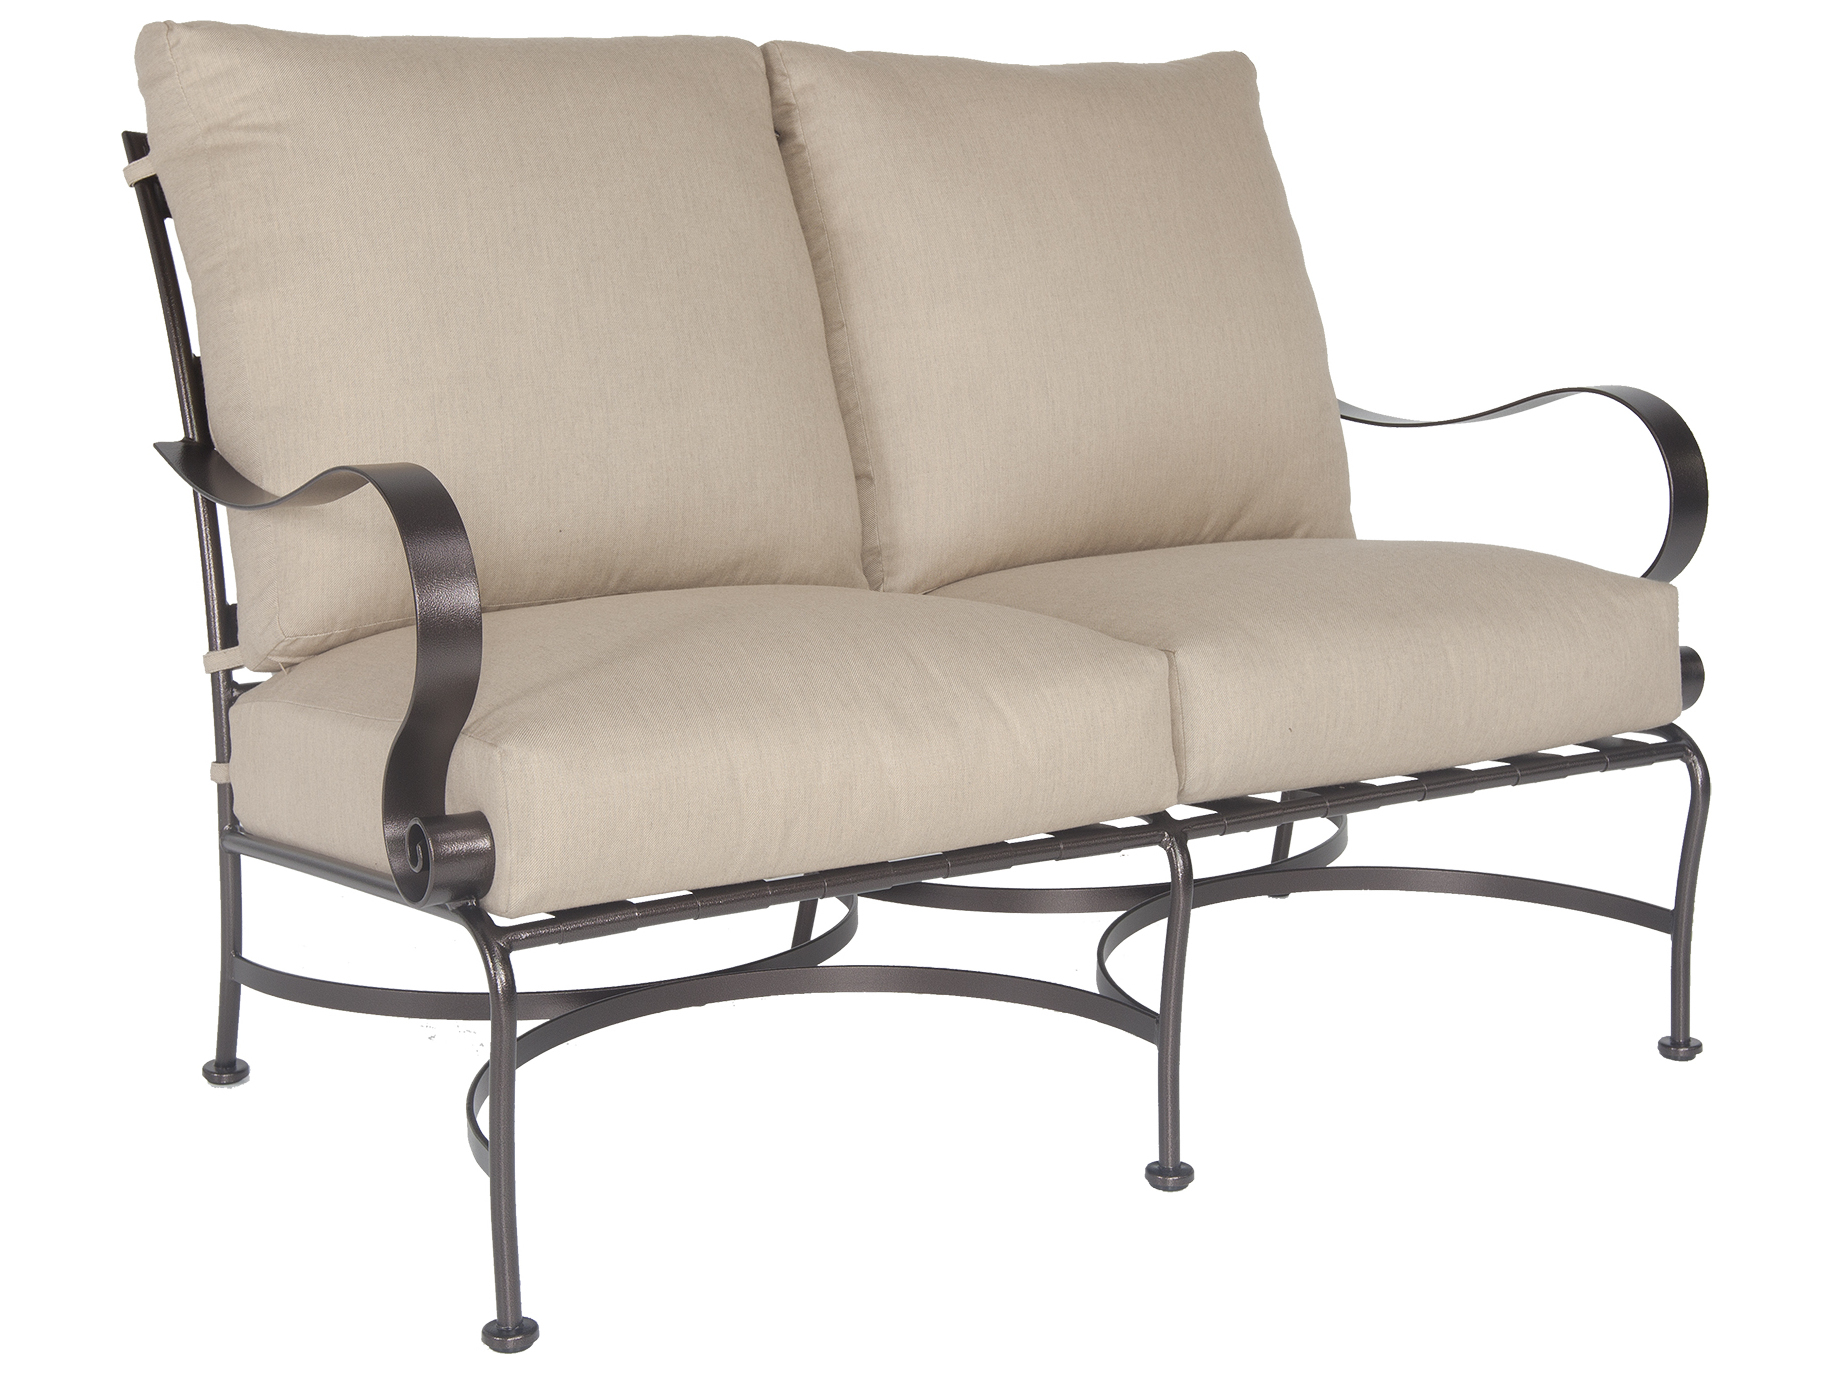 Ow Lee Marquette Wrought Iron Loveseat 2056 2s